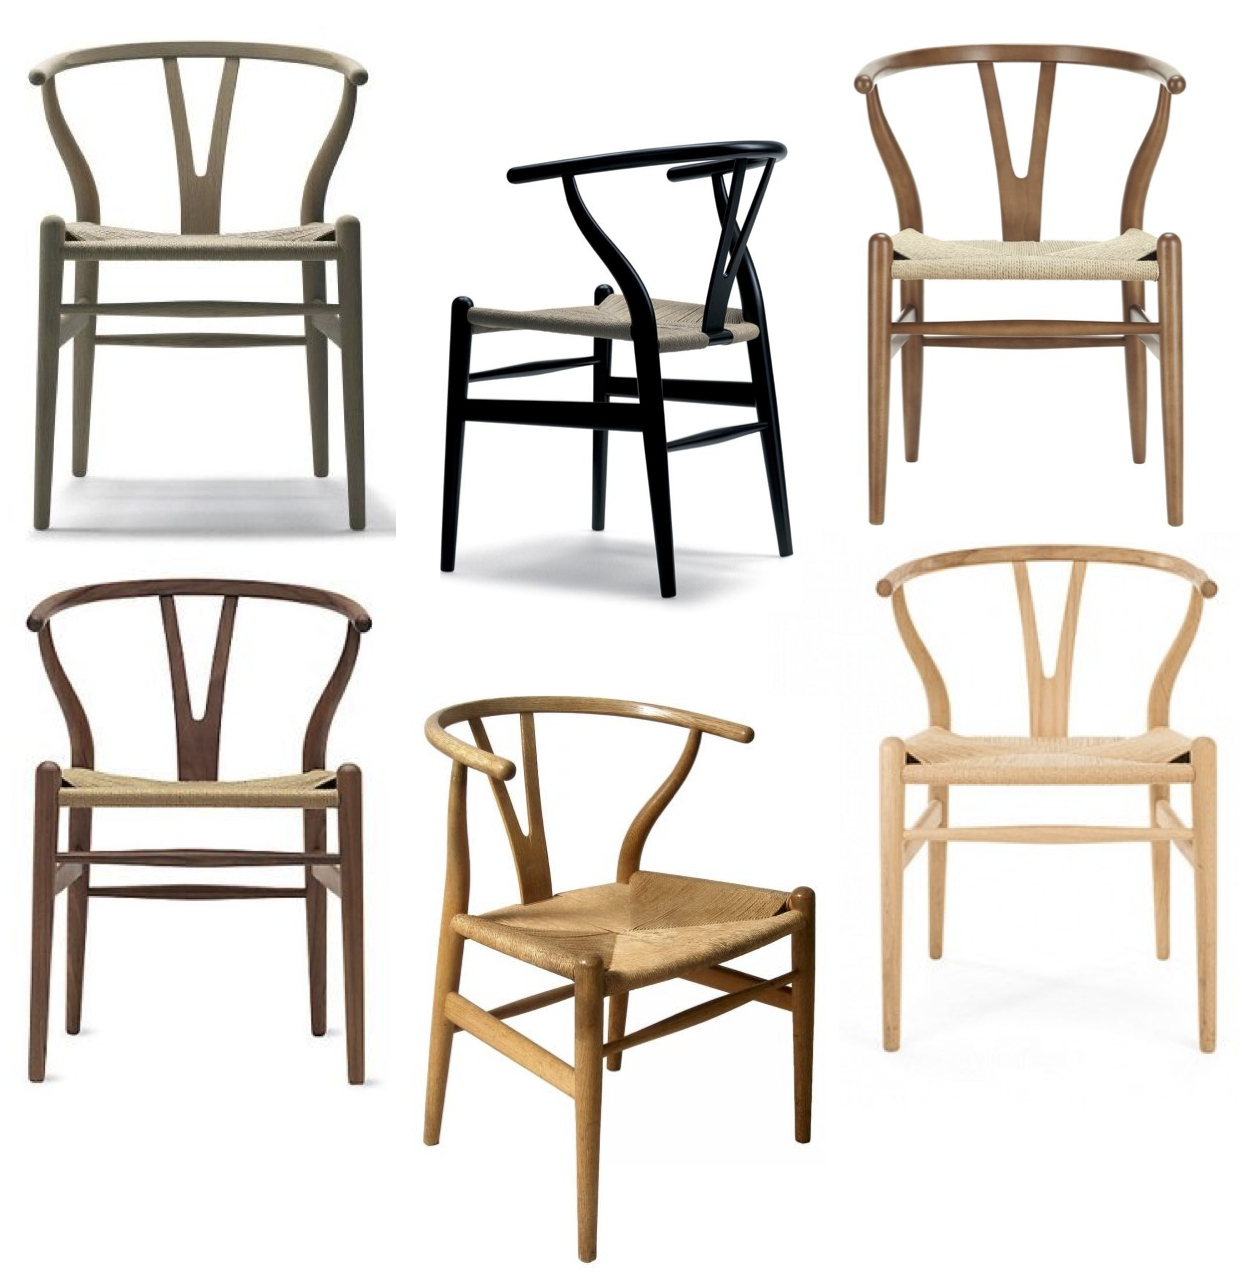 wishbone chair arthur espenet carpenter chairu0027 moderne. Black Bedroom Furniture Sets. Home Design Ideas